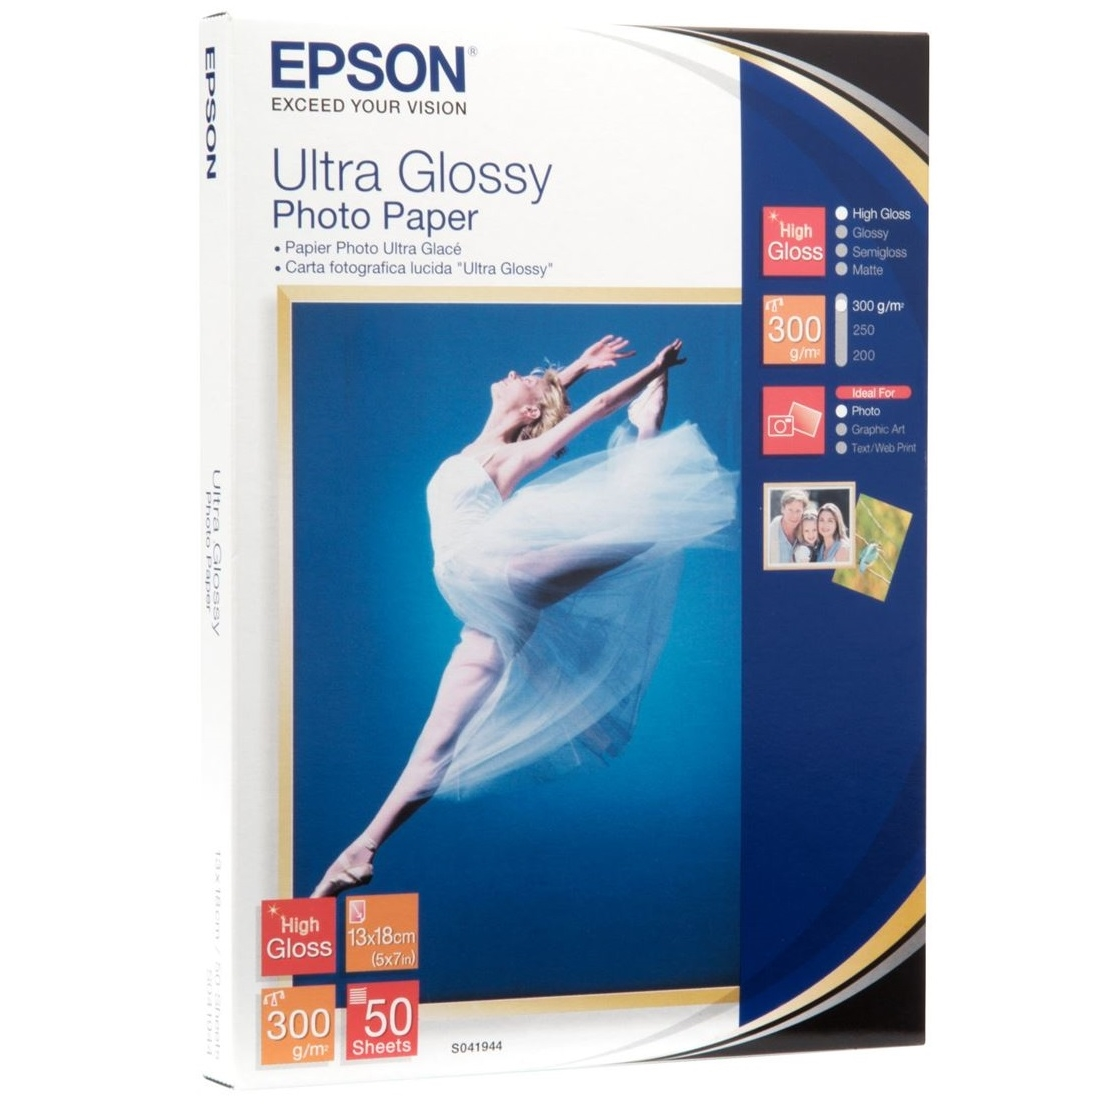 Original Epson S041944 300gsm 13 x 18cm Photo Paper - 50 Sheets (C13S041944)